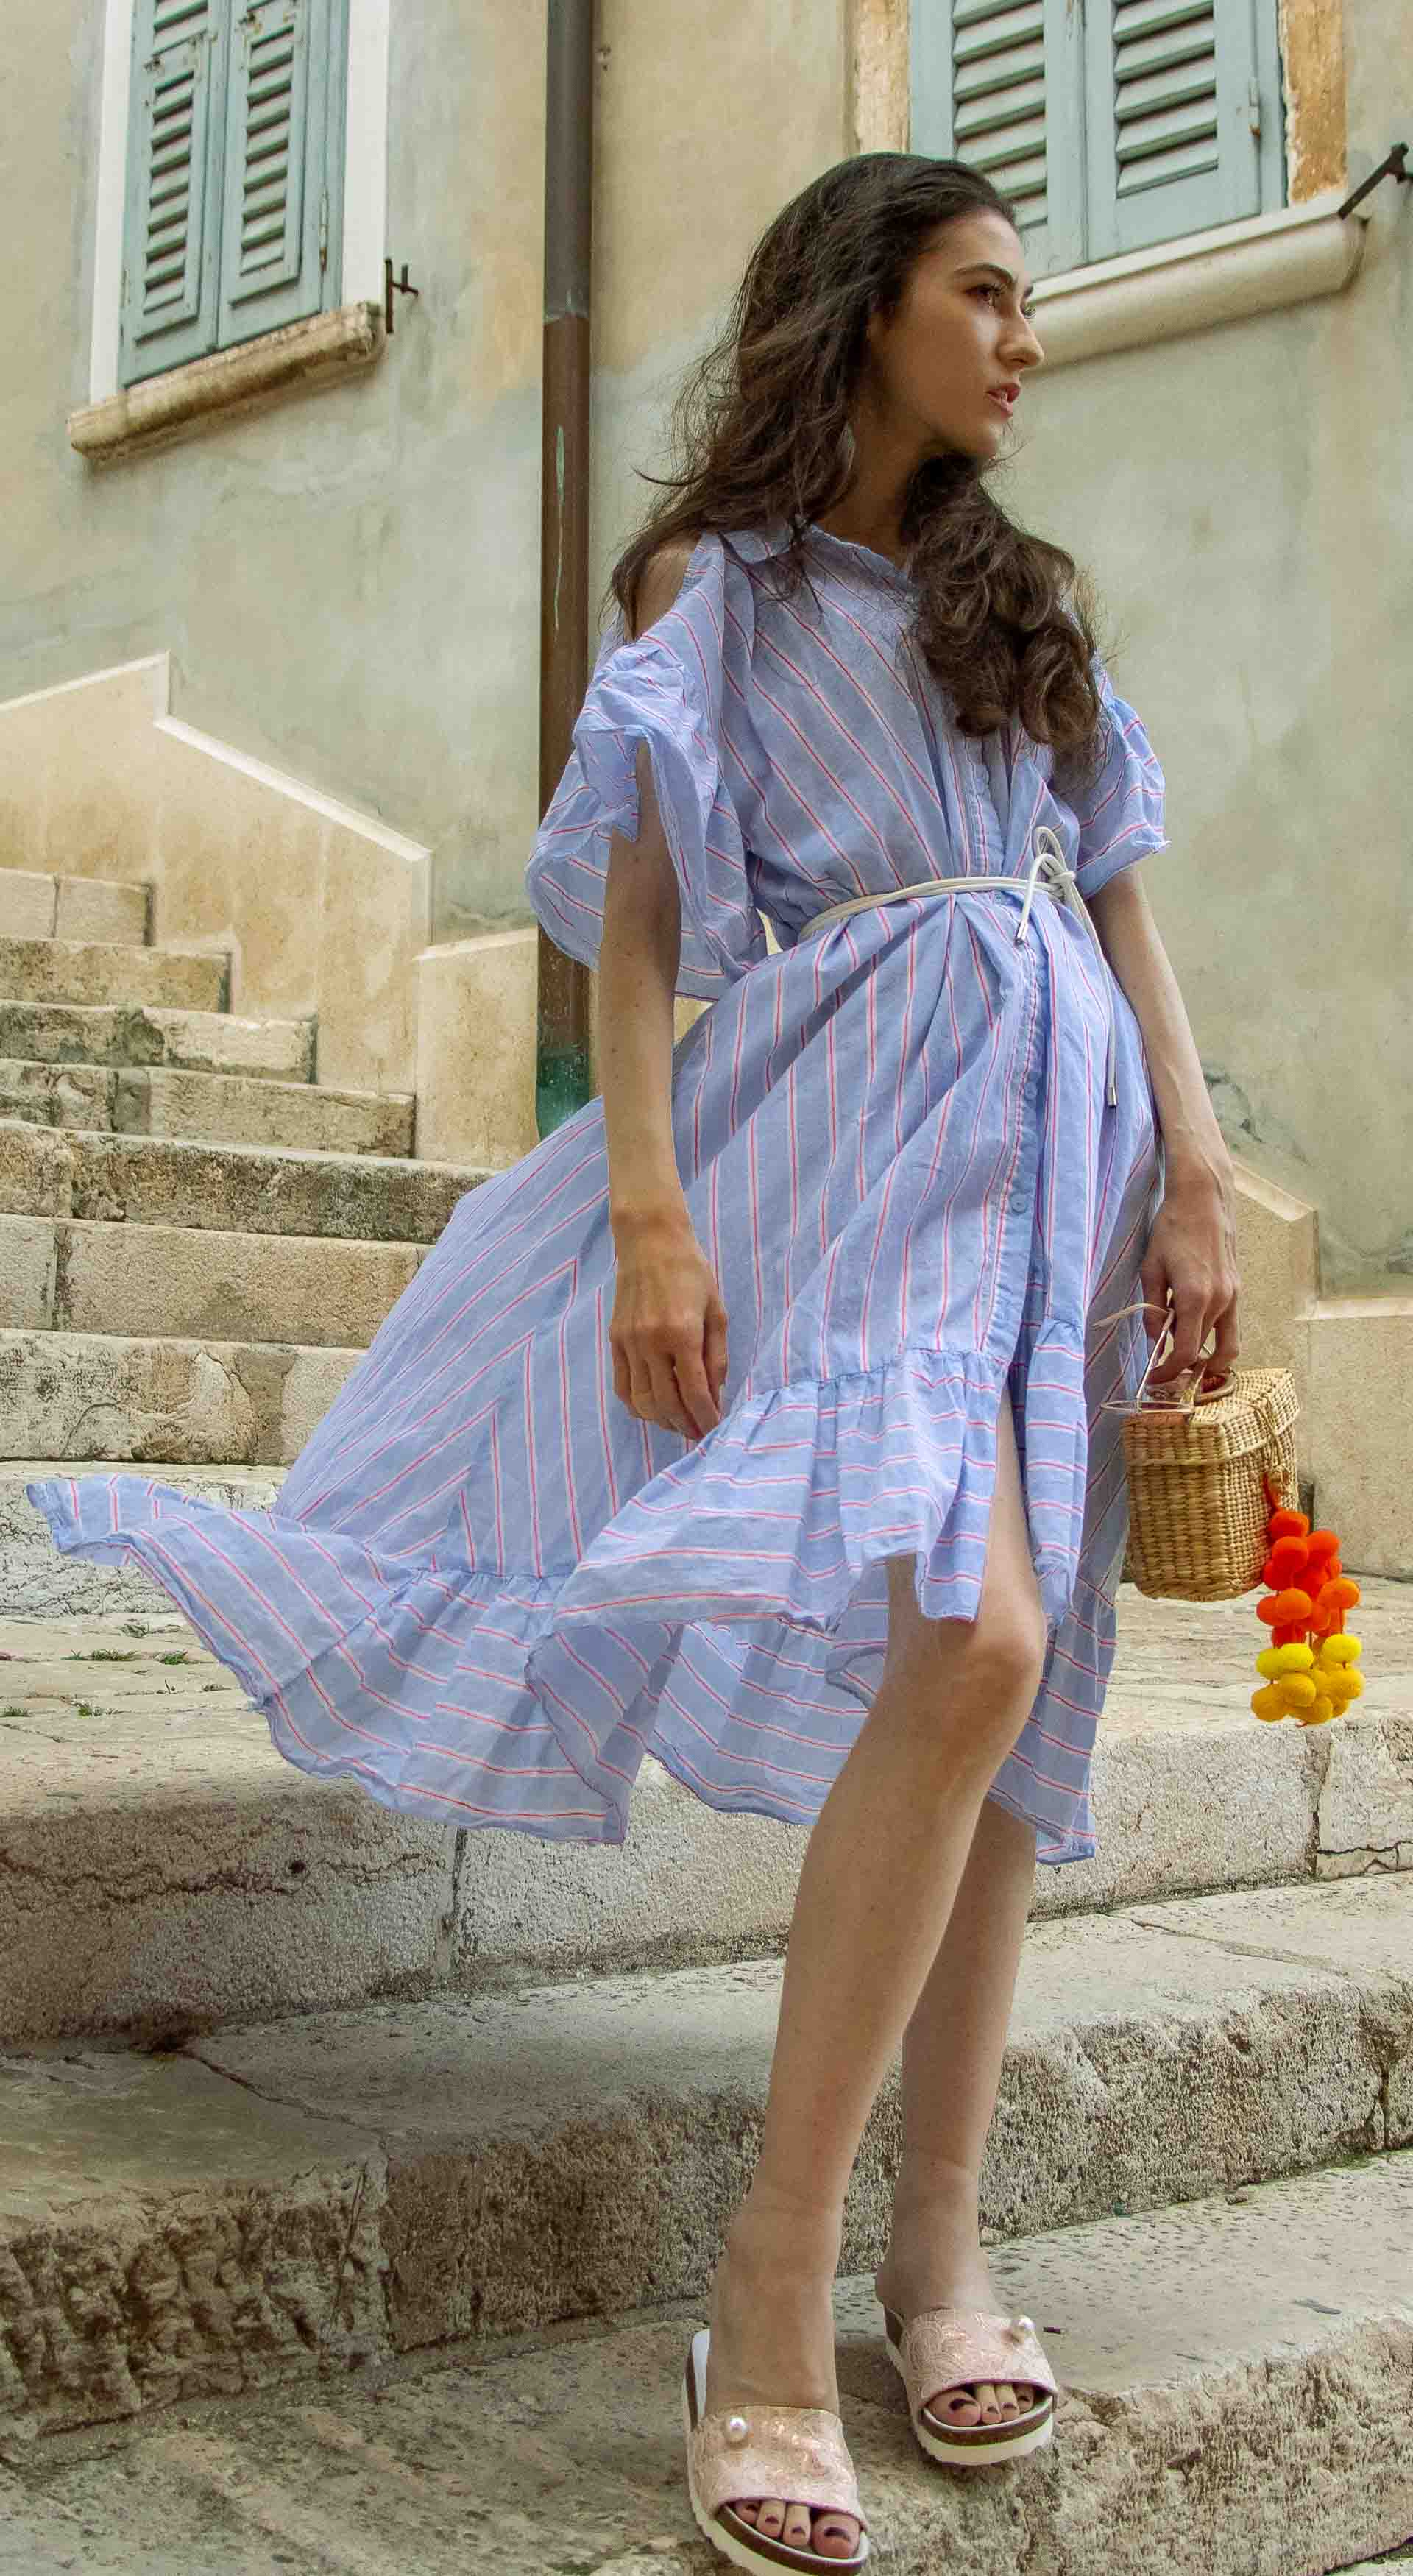 Fashion Blogger Veronika Lipar of Brunette from Wall Street dressed in Storets cold shoulder striped ruffled summer dress, blush lace pool luxe slides, Nannacay basket bag in Rovinj